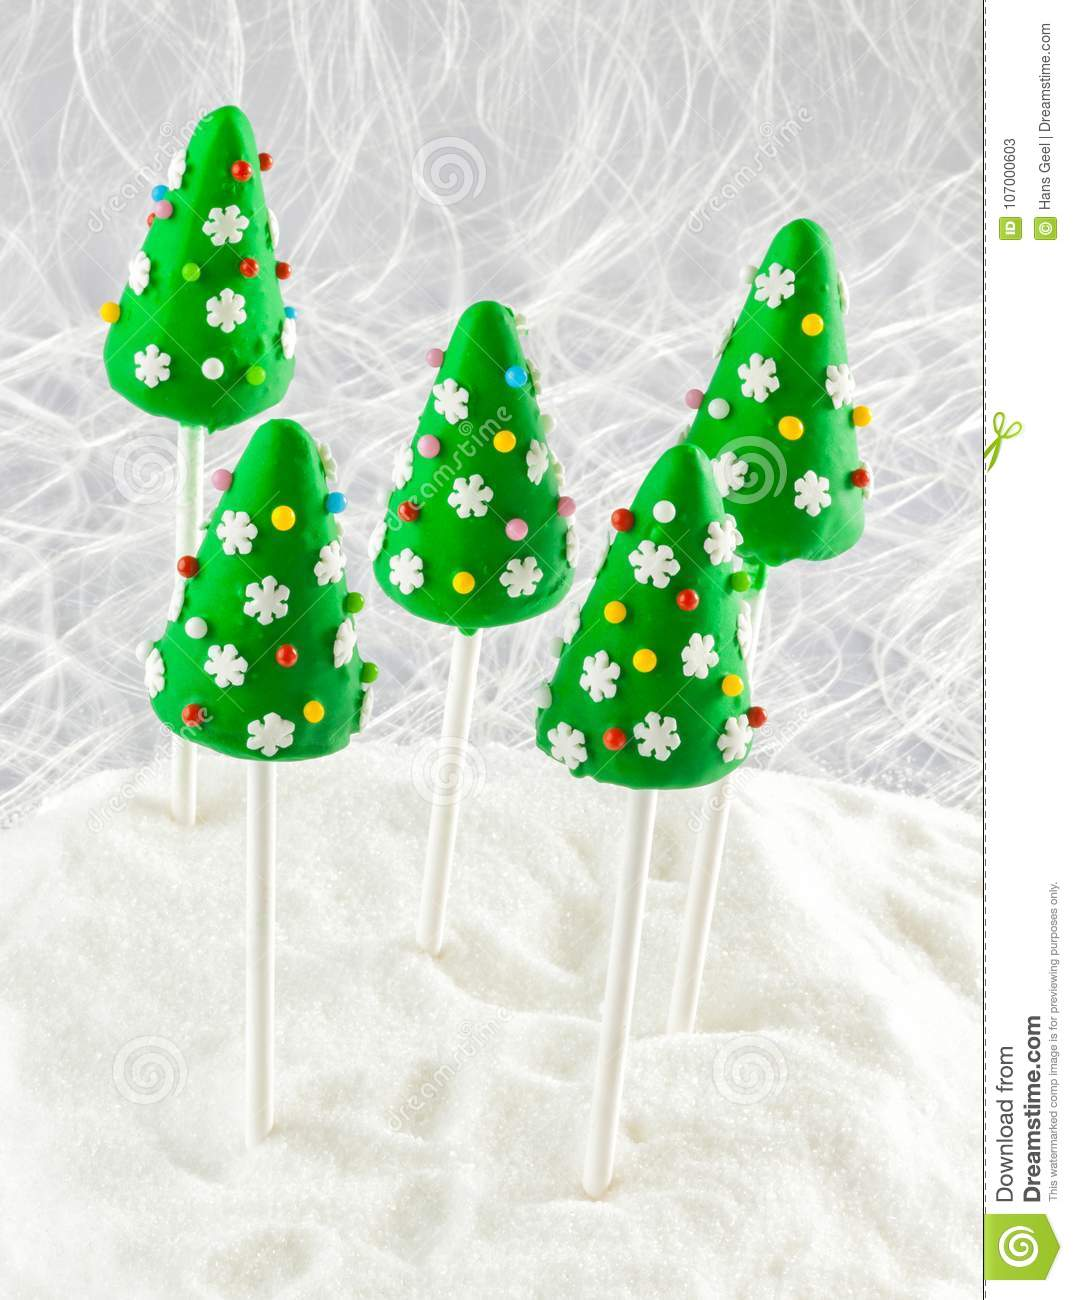 Christmas Cake Pops With Decorations Stock Image Image Of